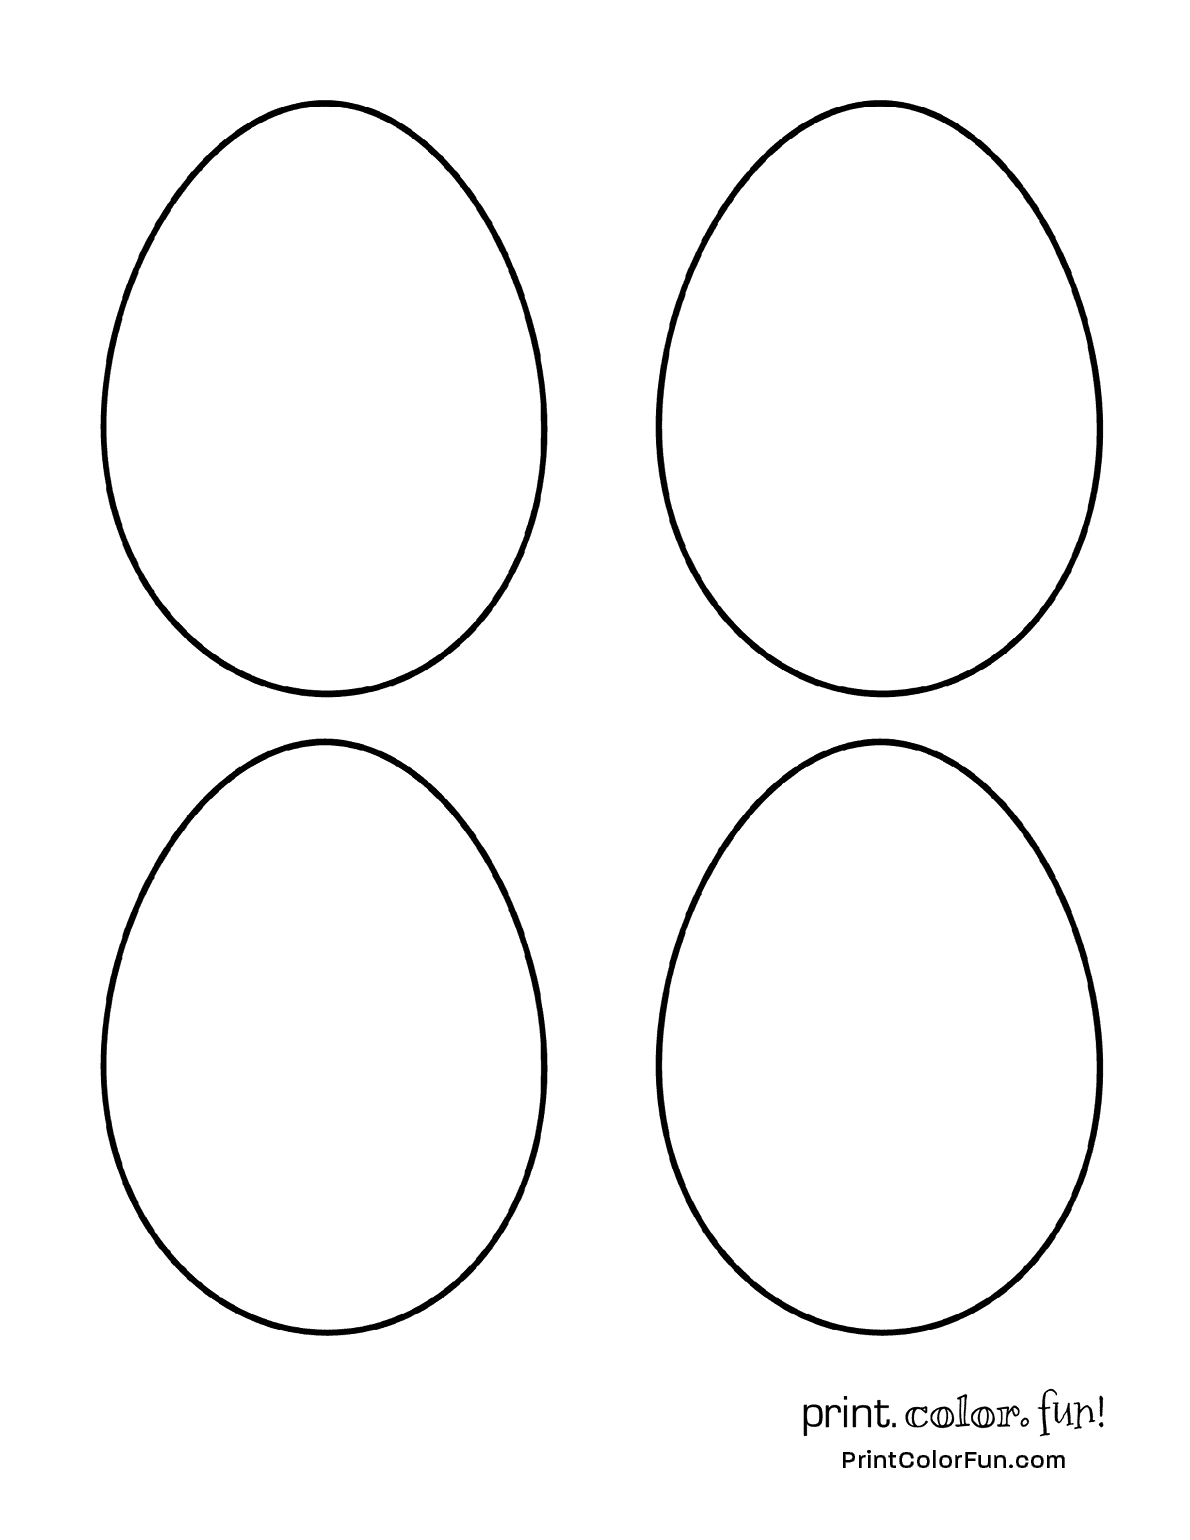 4 blank egg shapes to color for Easter coloring page - Print. Color ...